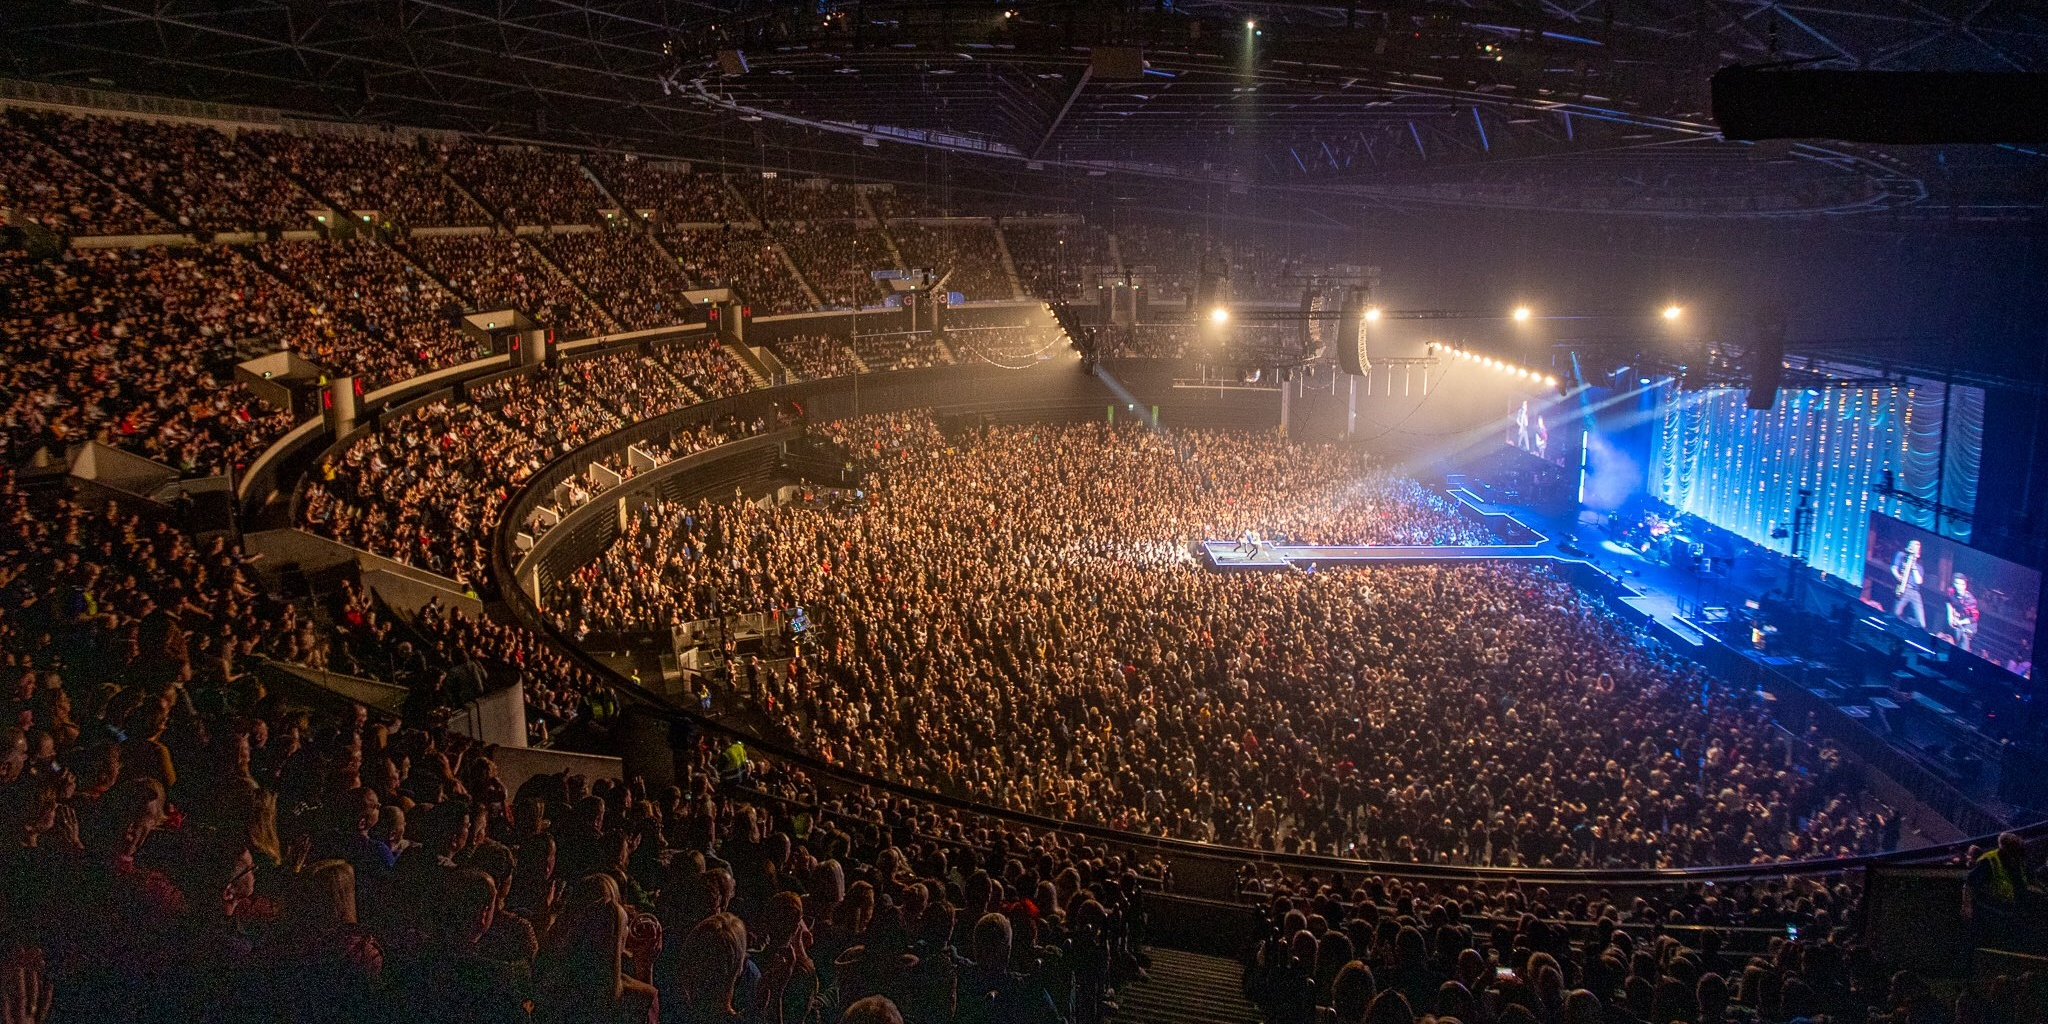 Stereophonics receive backlash for holding massive arena shows in time of COVID-19